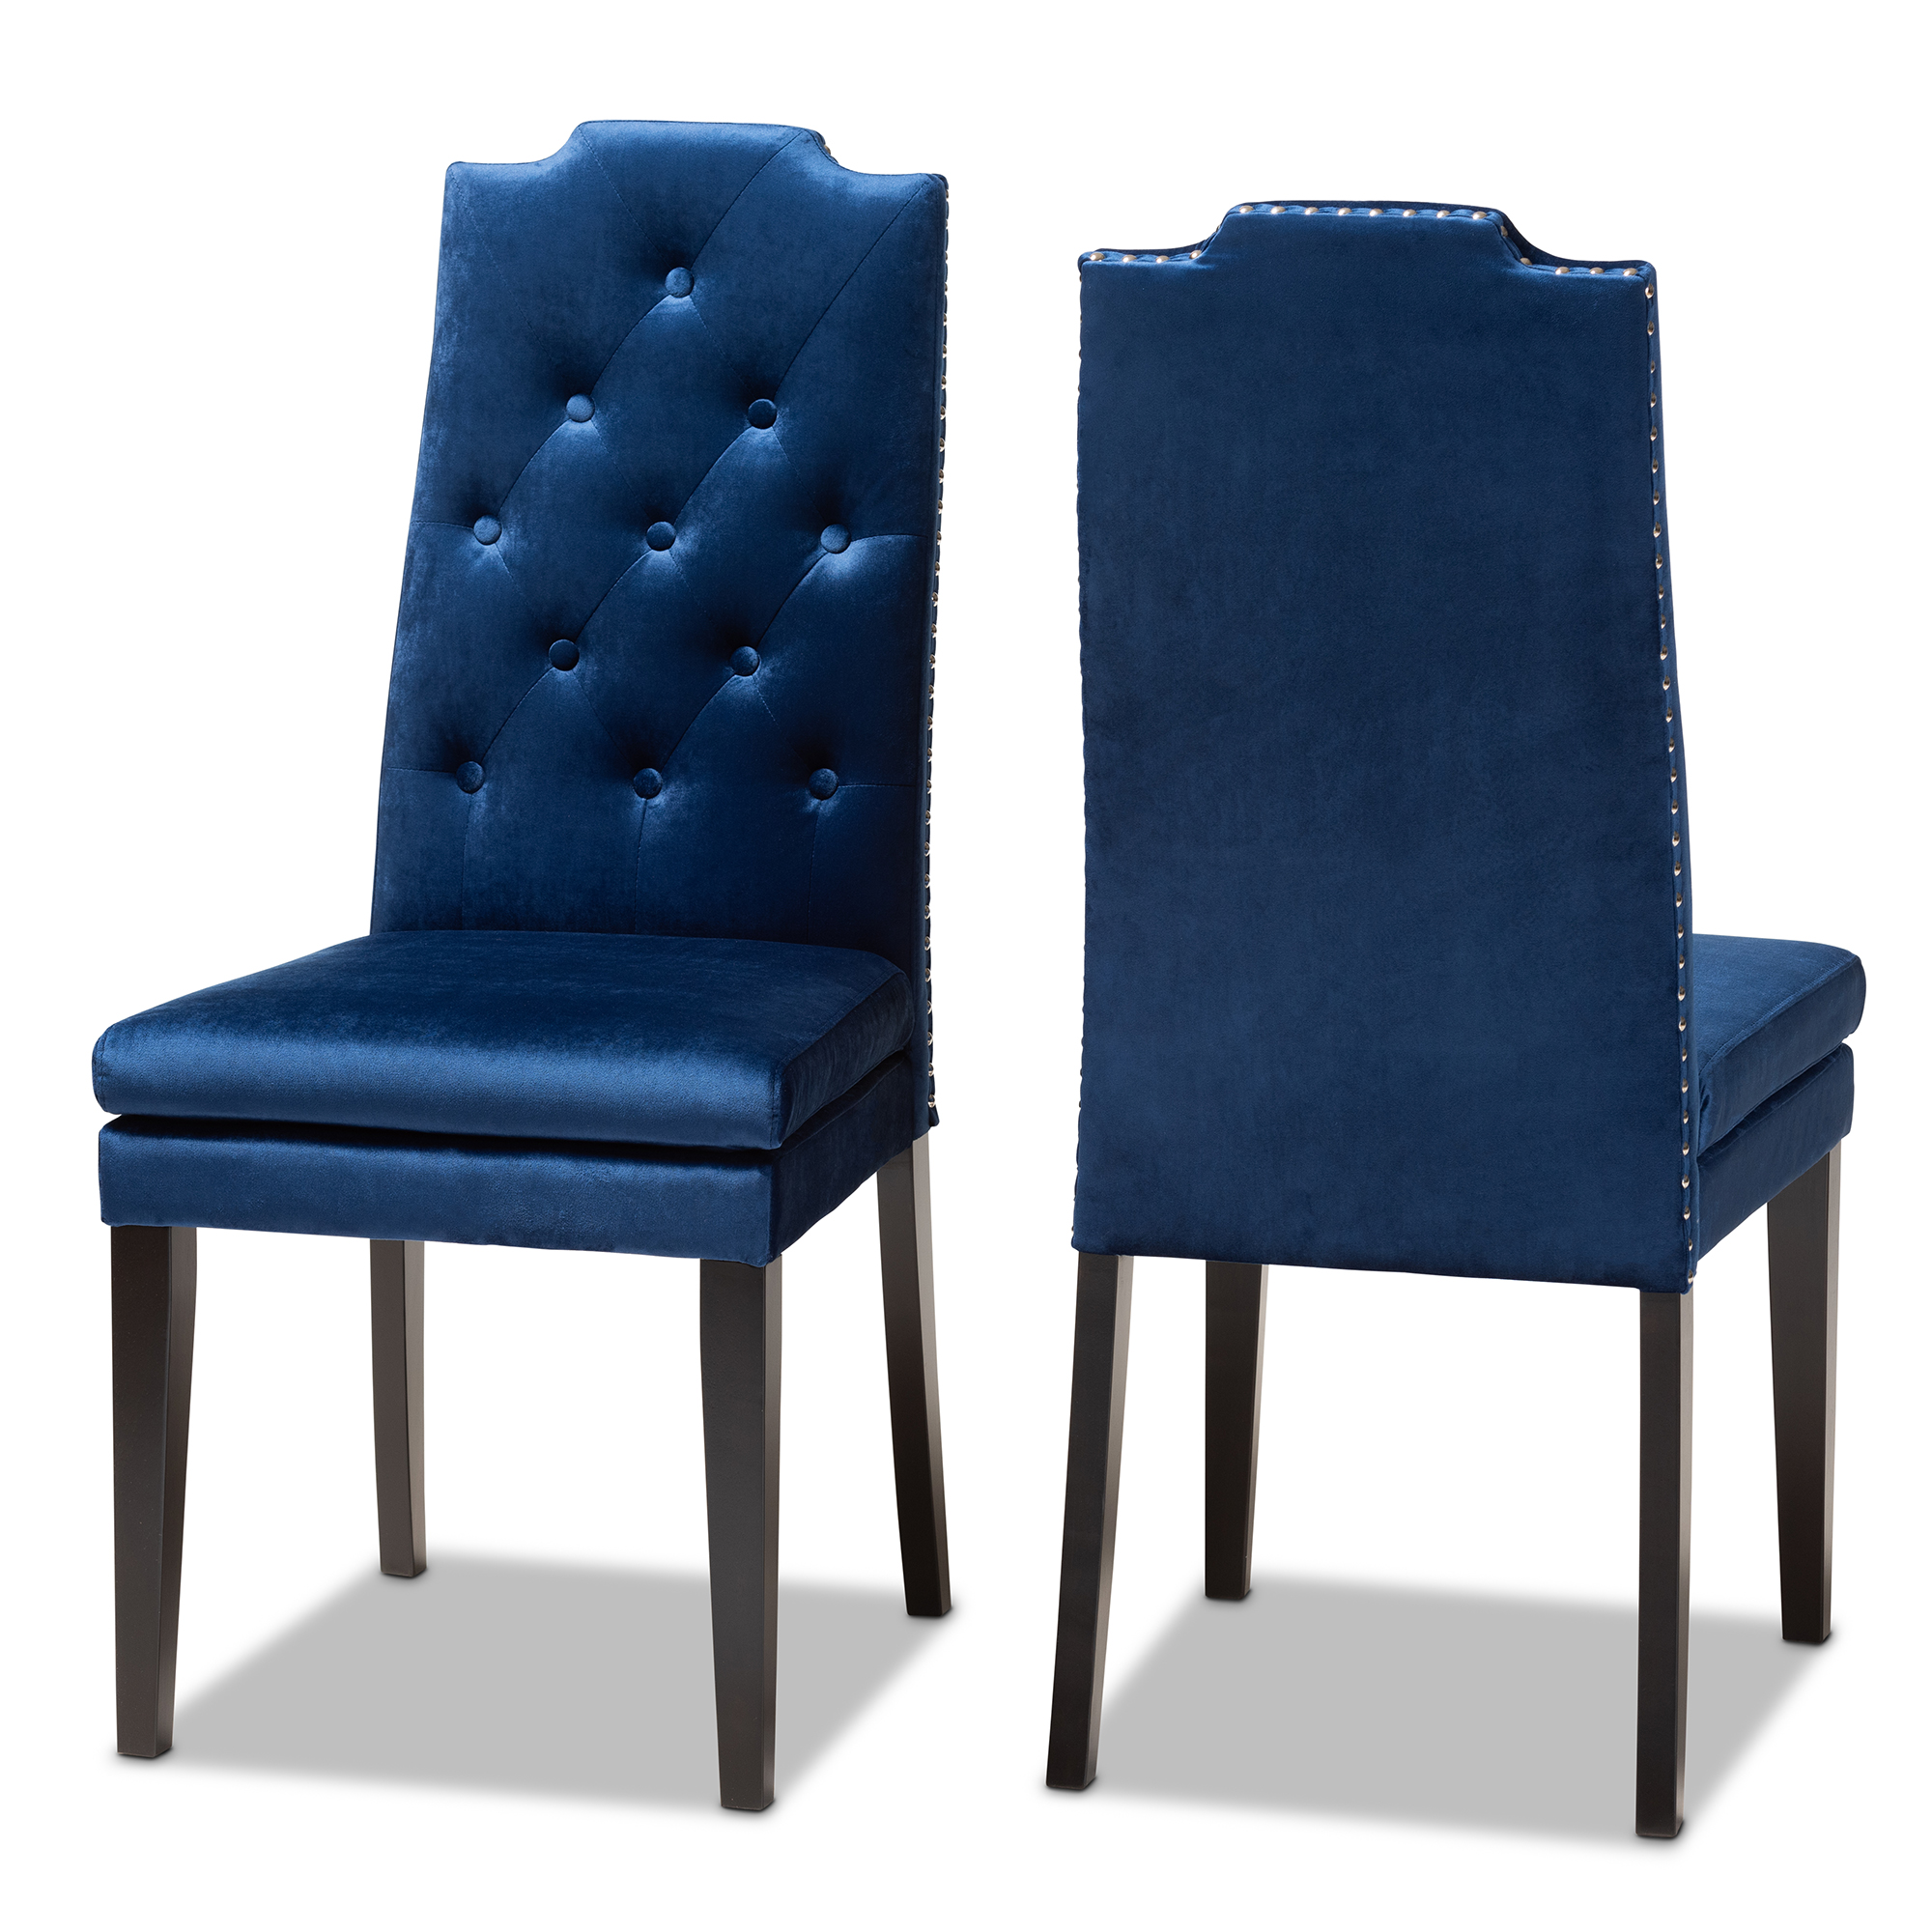 Baxton Studio Dylin Modern And Contemporary Navy Blue Velvet